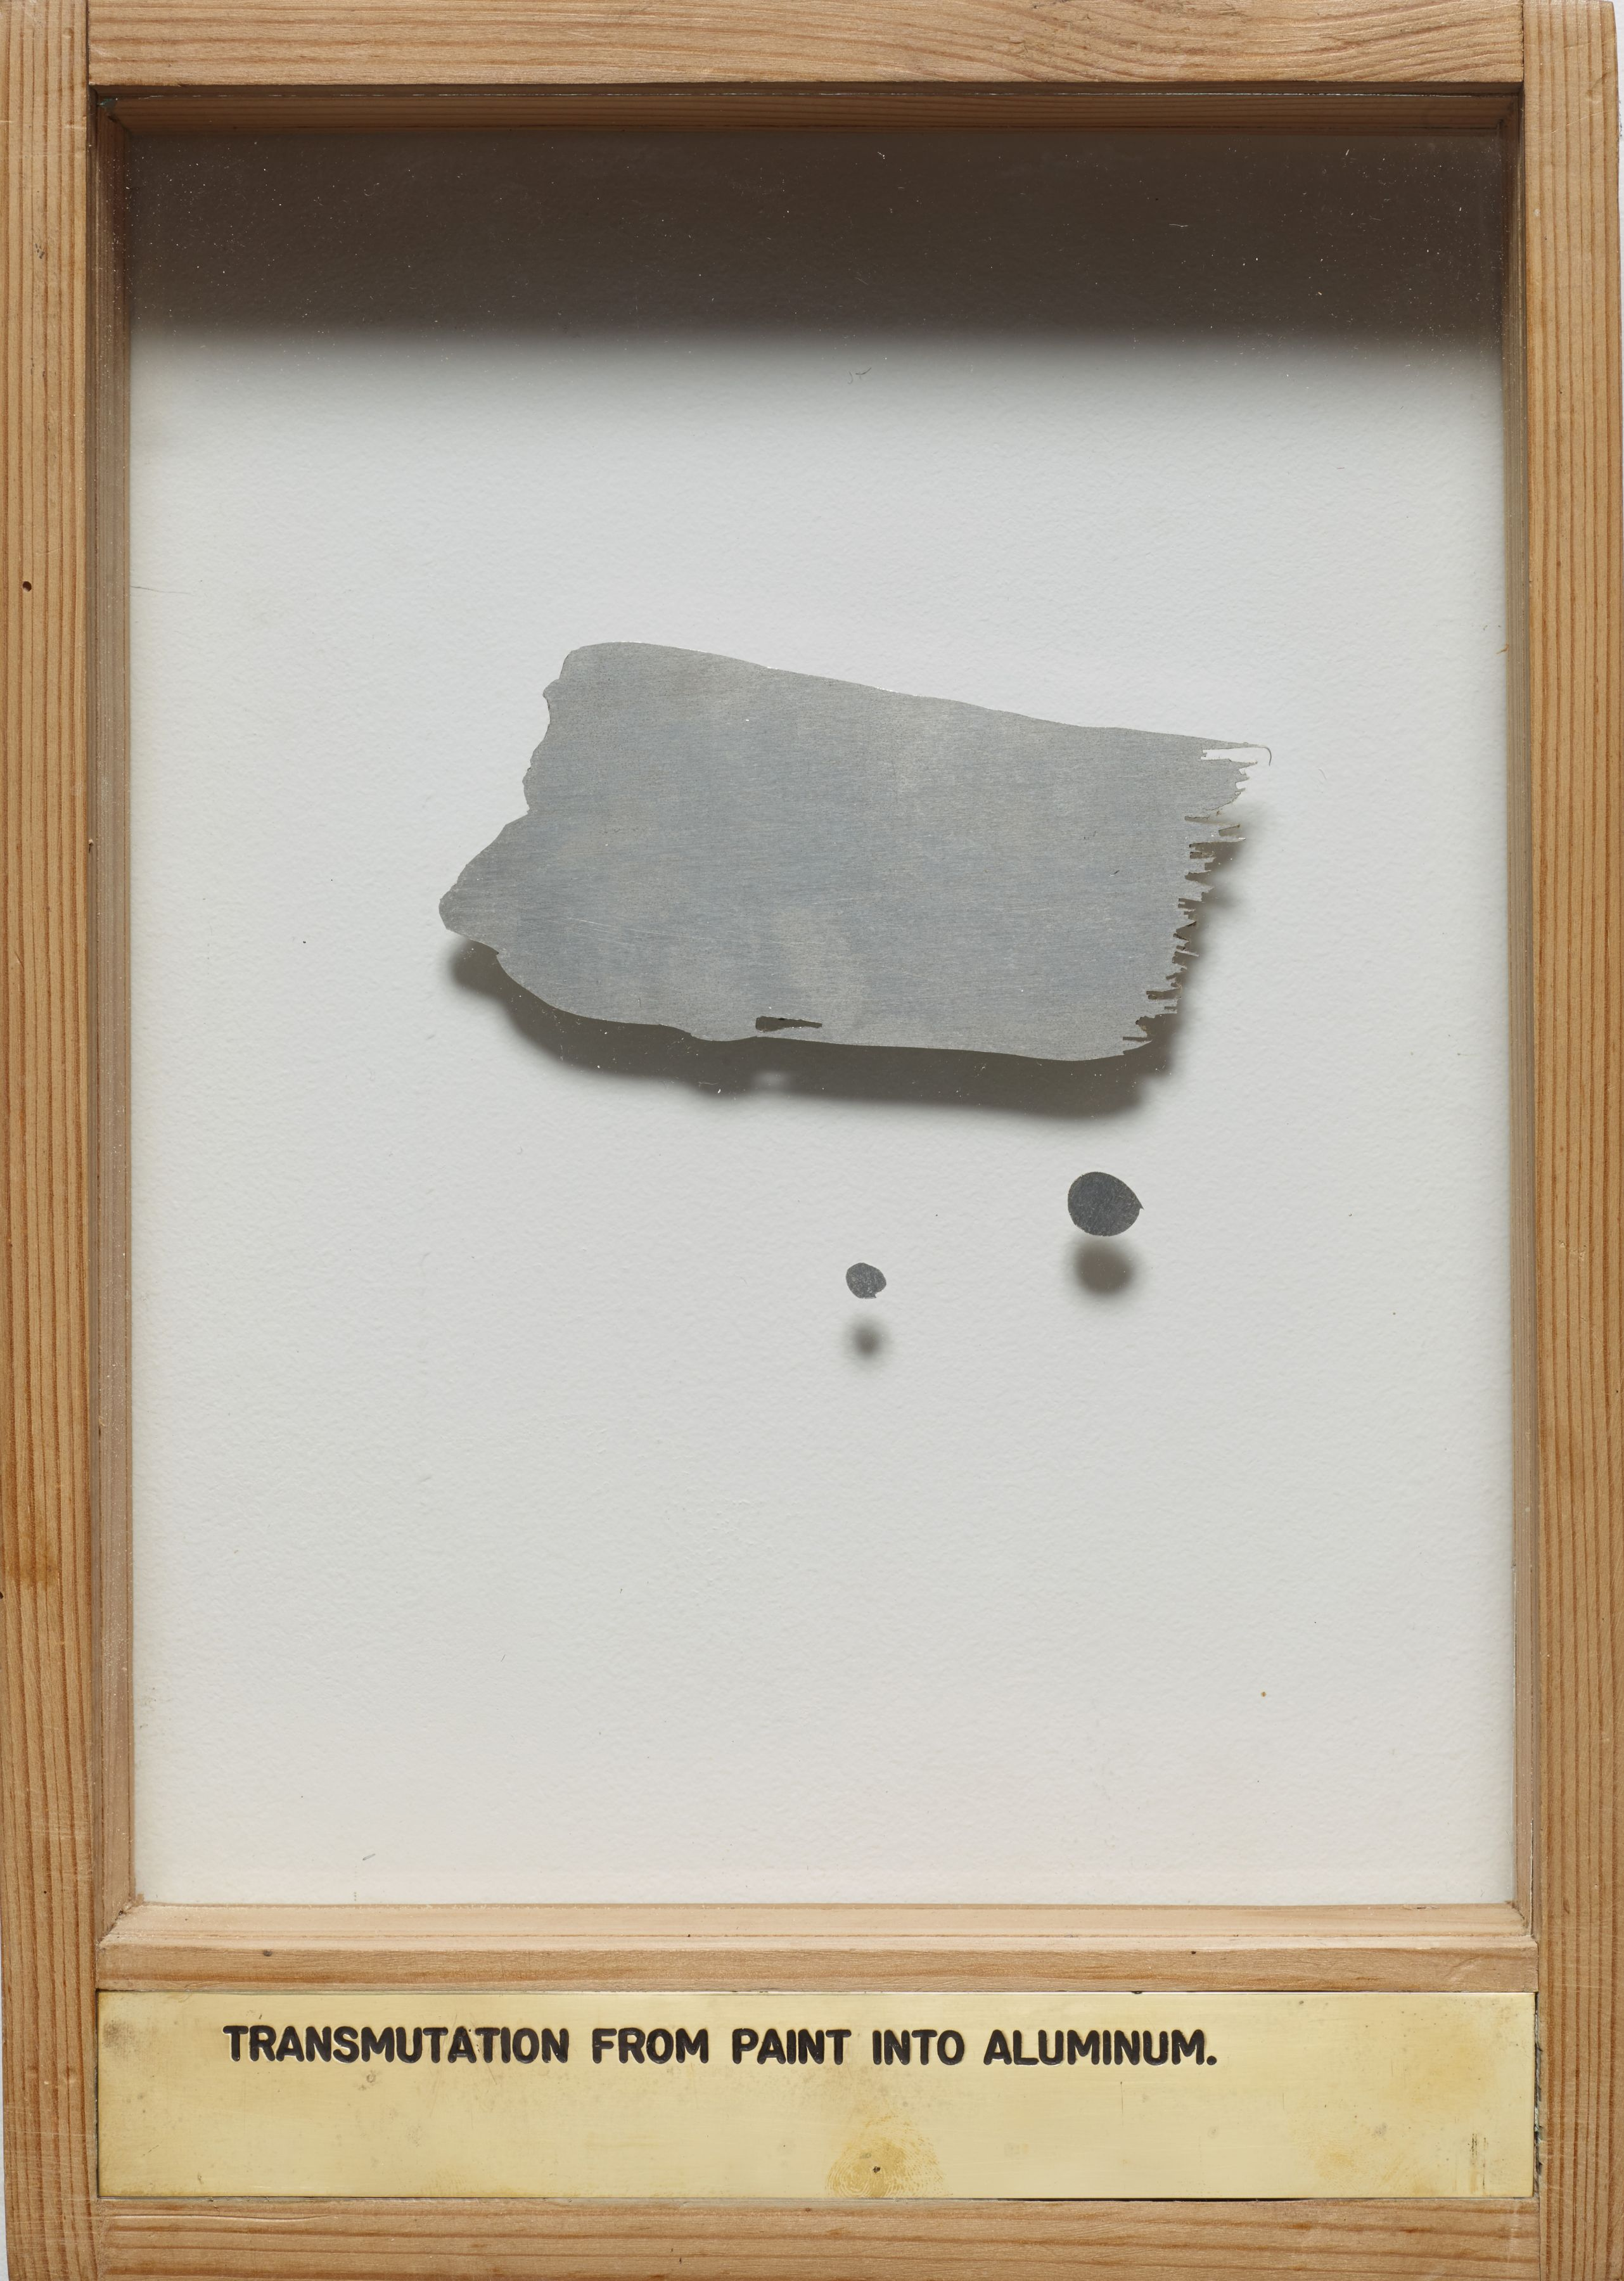 Luis Camnitzer, Transmutation from Paint into Aluminum, 1976